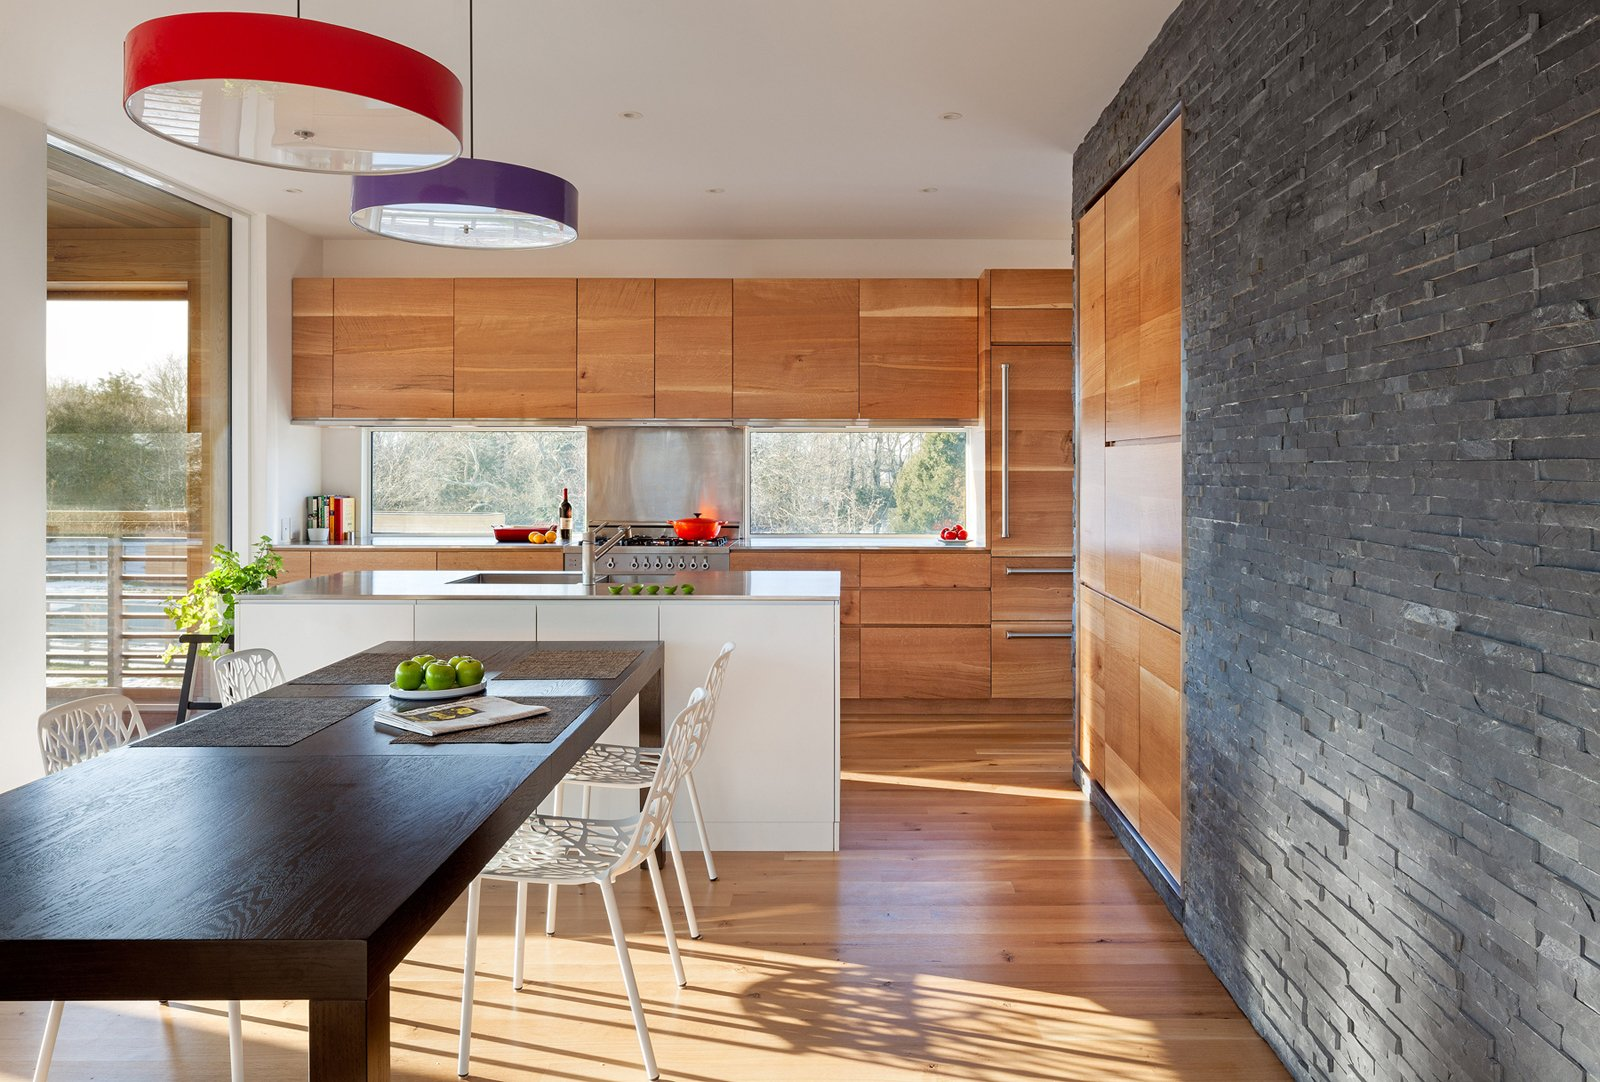 Tagged: Kitchen, Wood Cabinet, Medium Hardwood Floor, and Pendant Lighting.  Watch Hill by Diana Budds